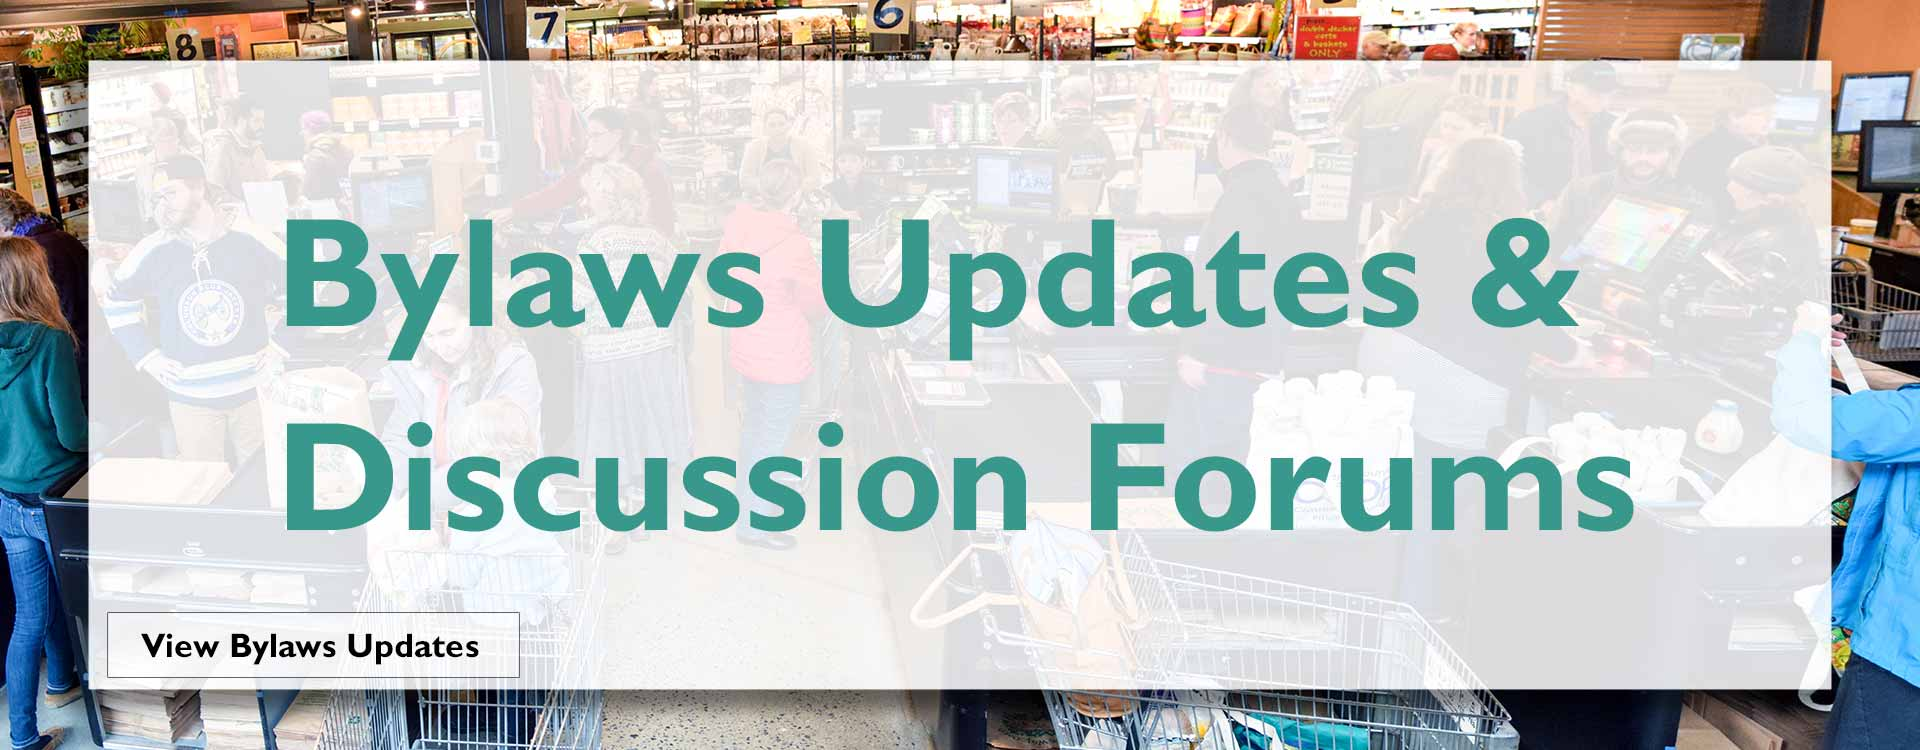 Bylaws Updates